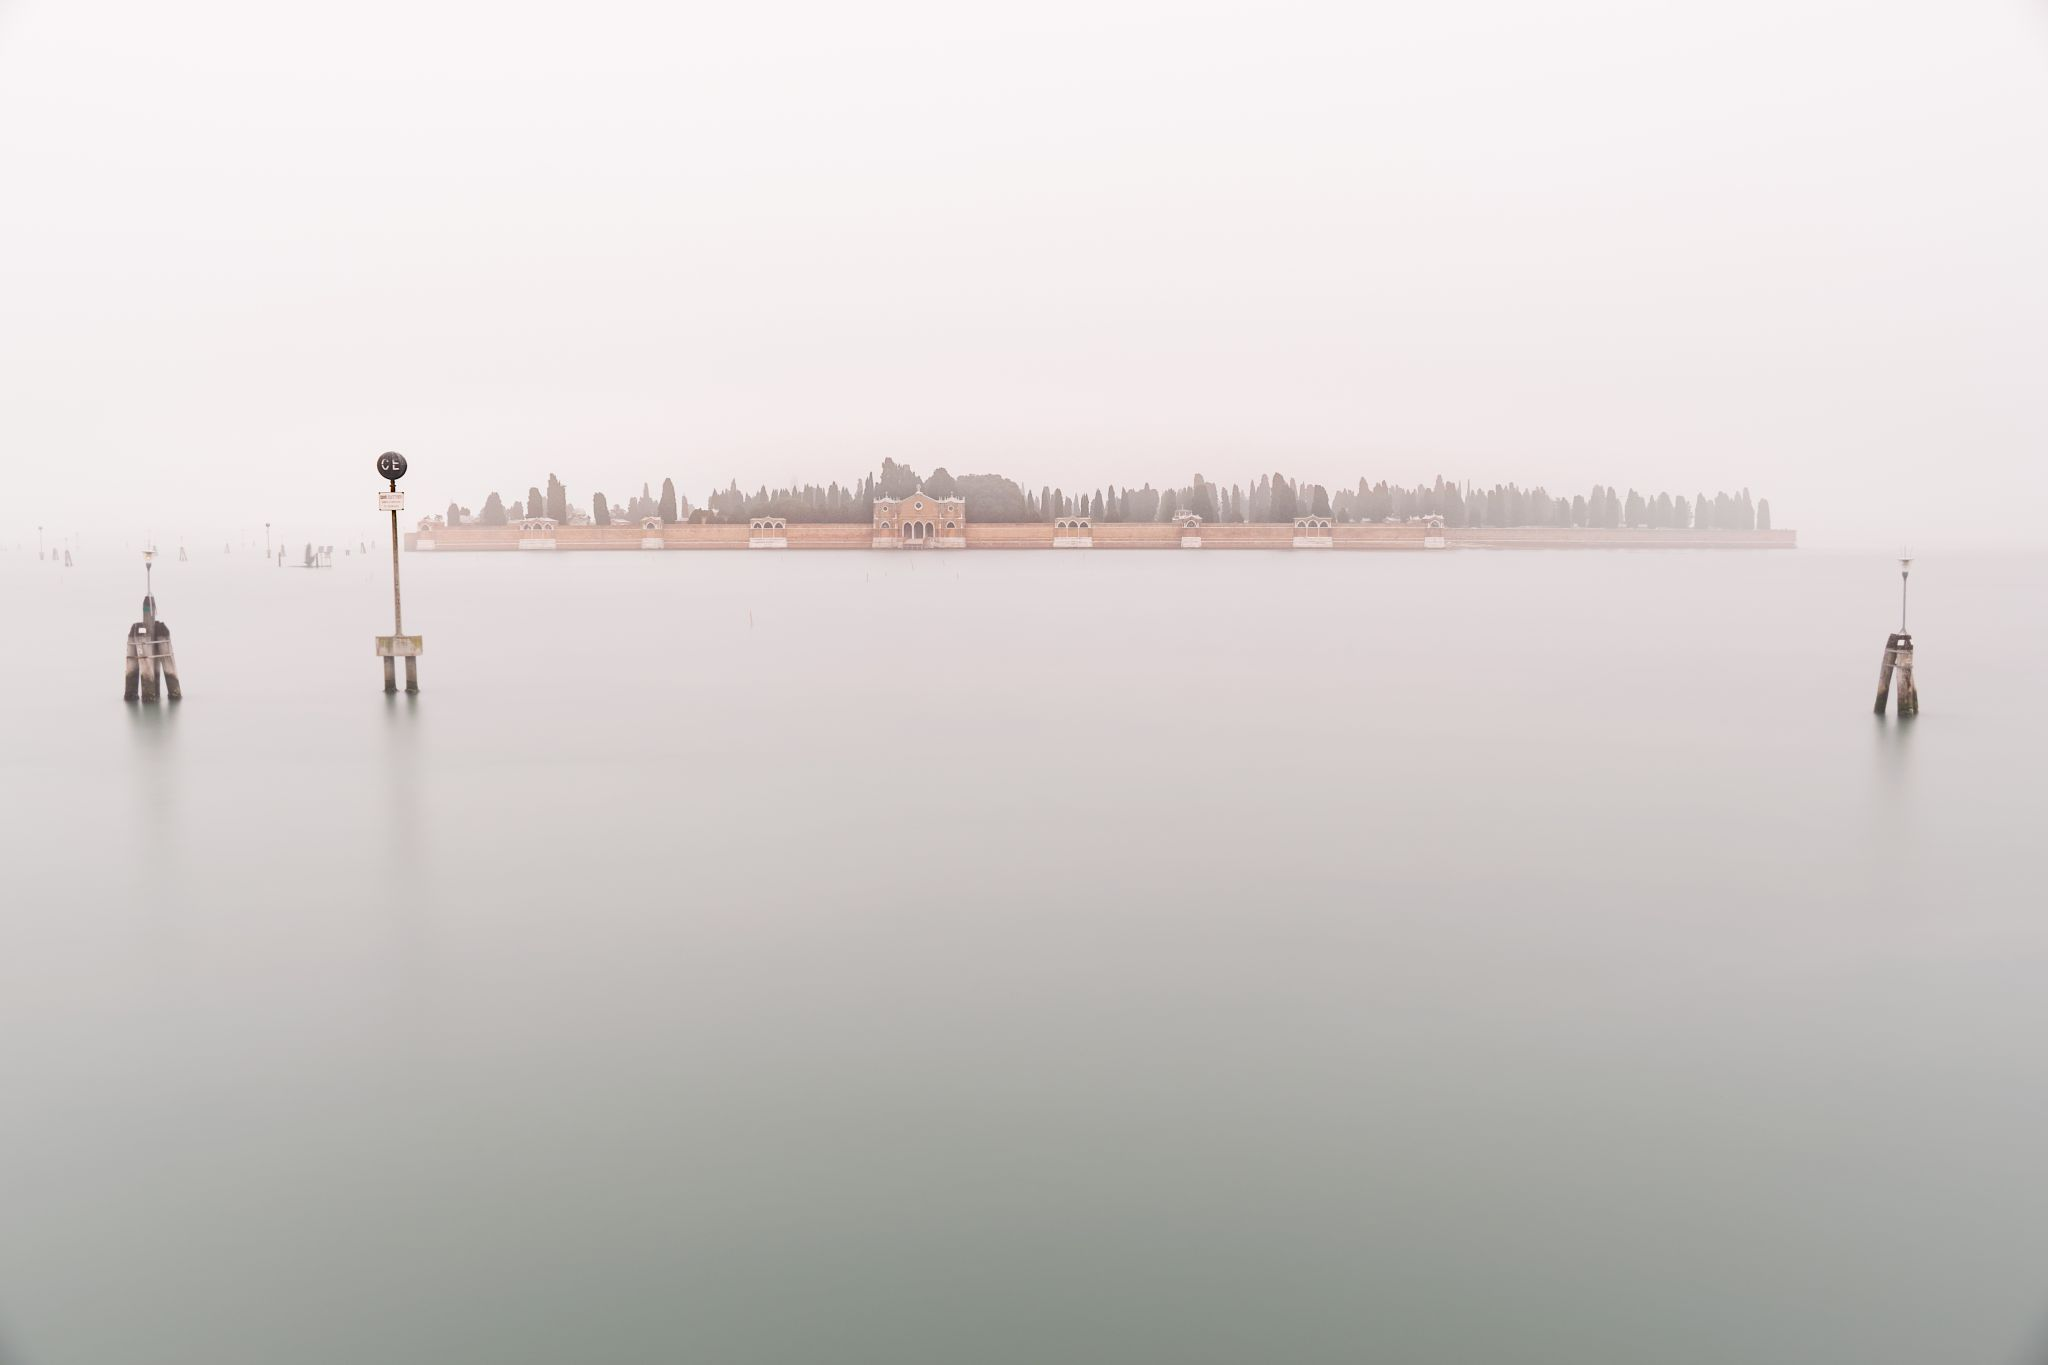 Milky morning in Venetian Lagoon, Italy